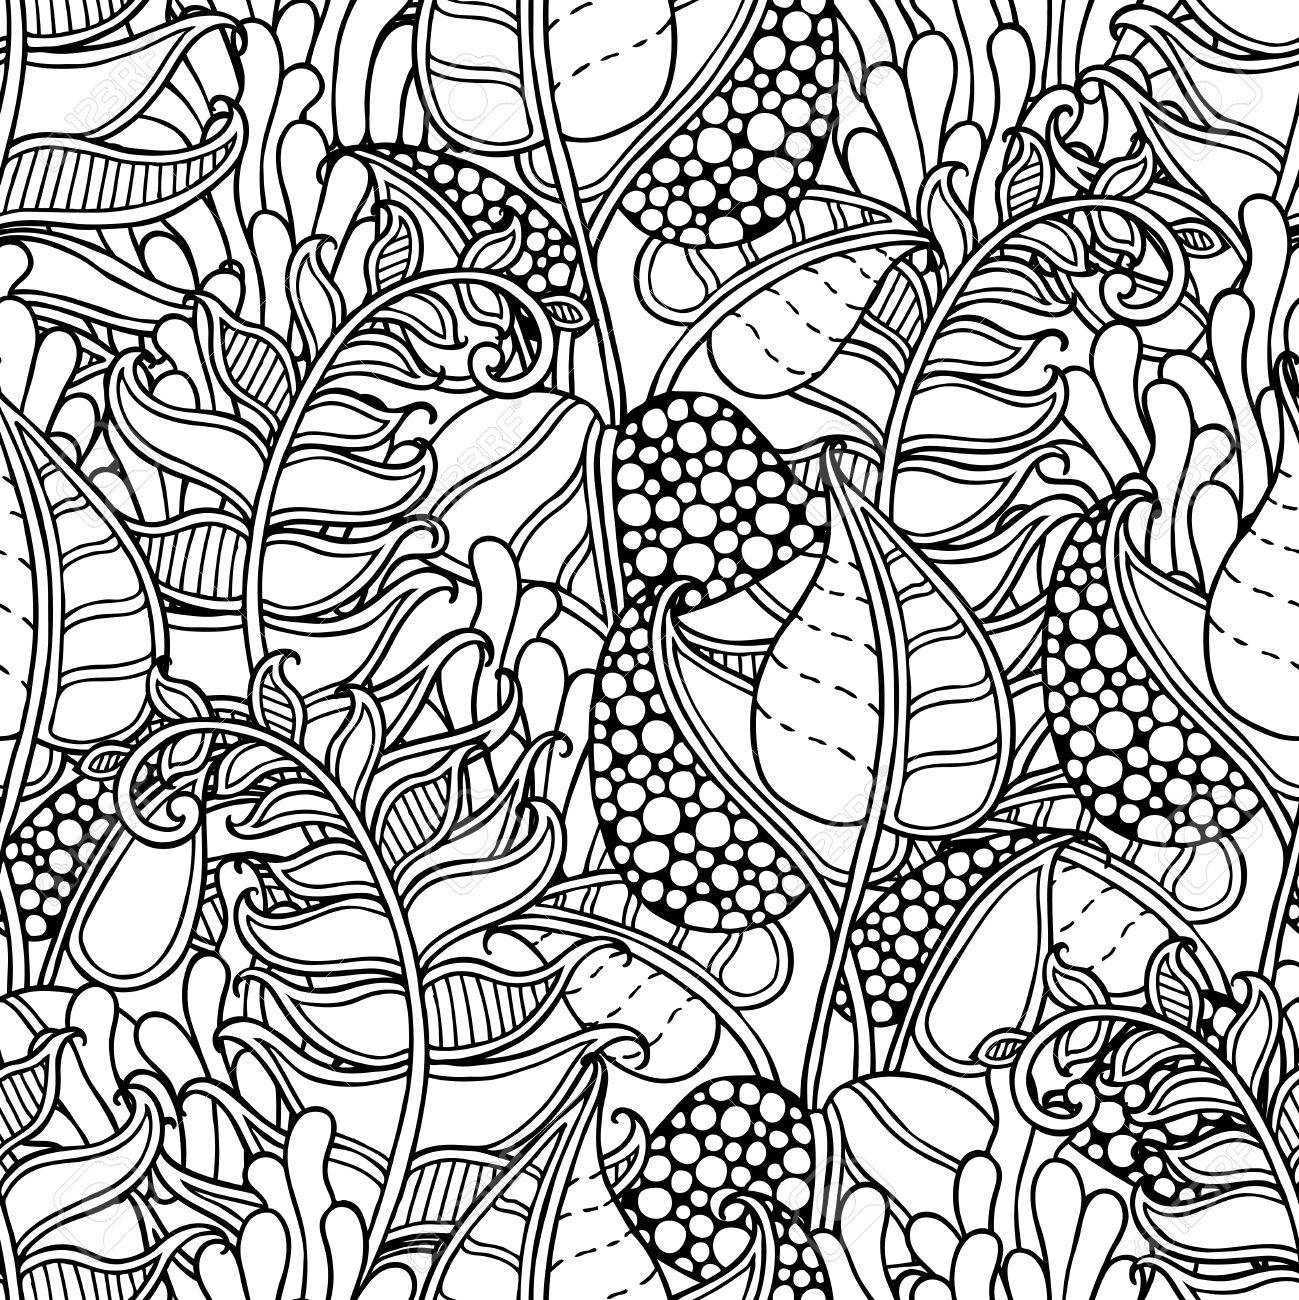 Seamless Nature Pattern In Doodle Style Floral Ornate Decorative Forest Vector Design